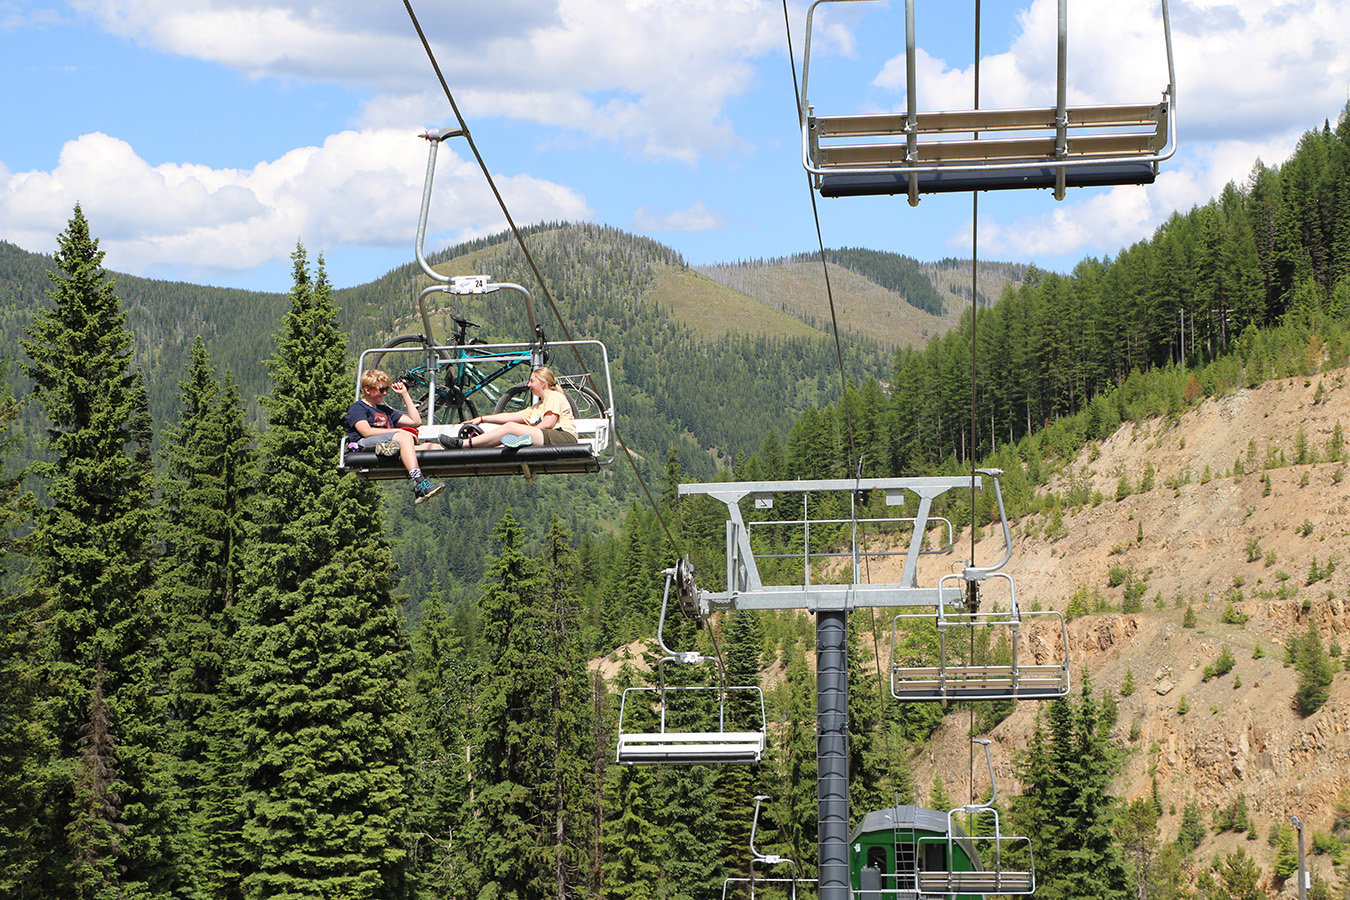 People riding a chairlift at Lookout Pass during summer to access hiking and mountain biking trails.